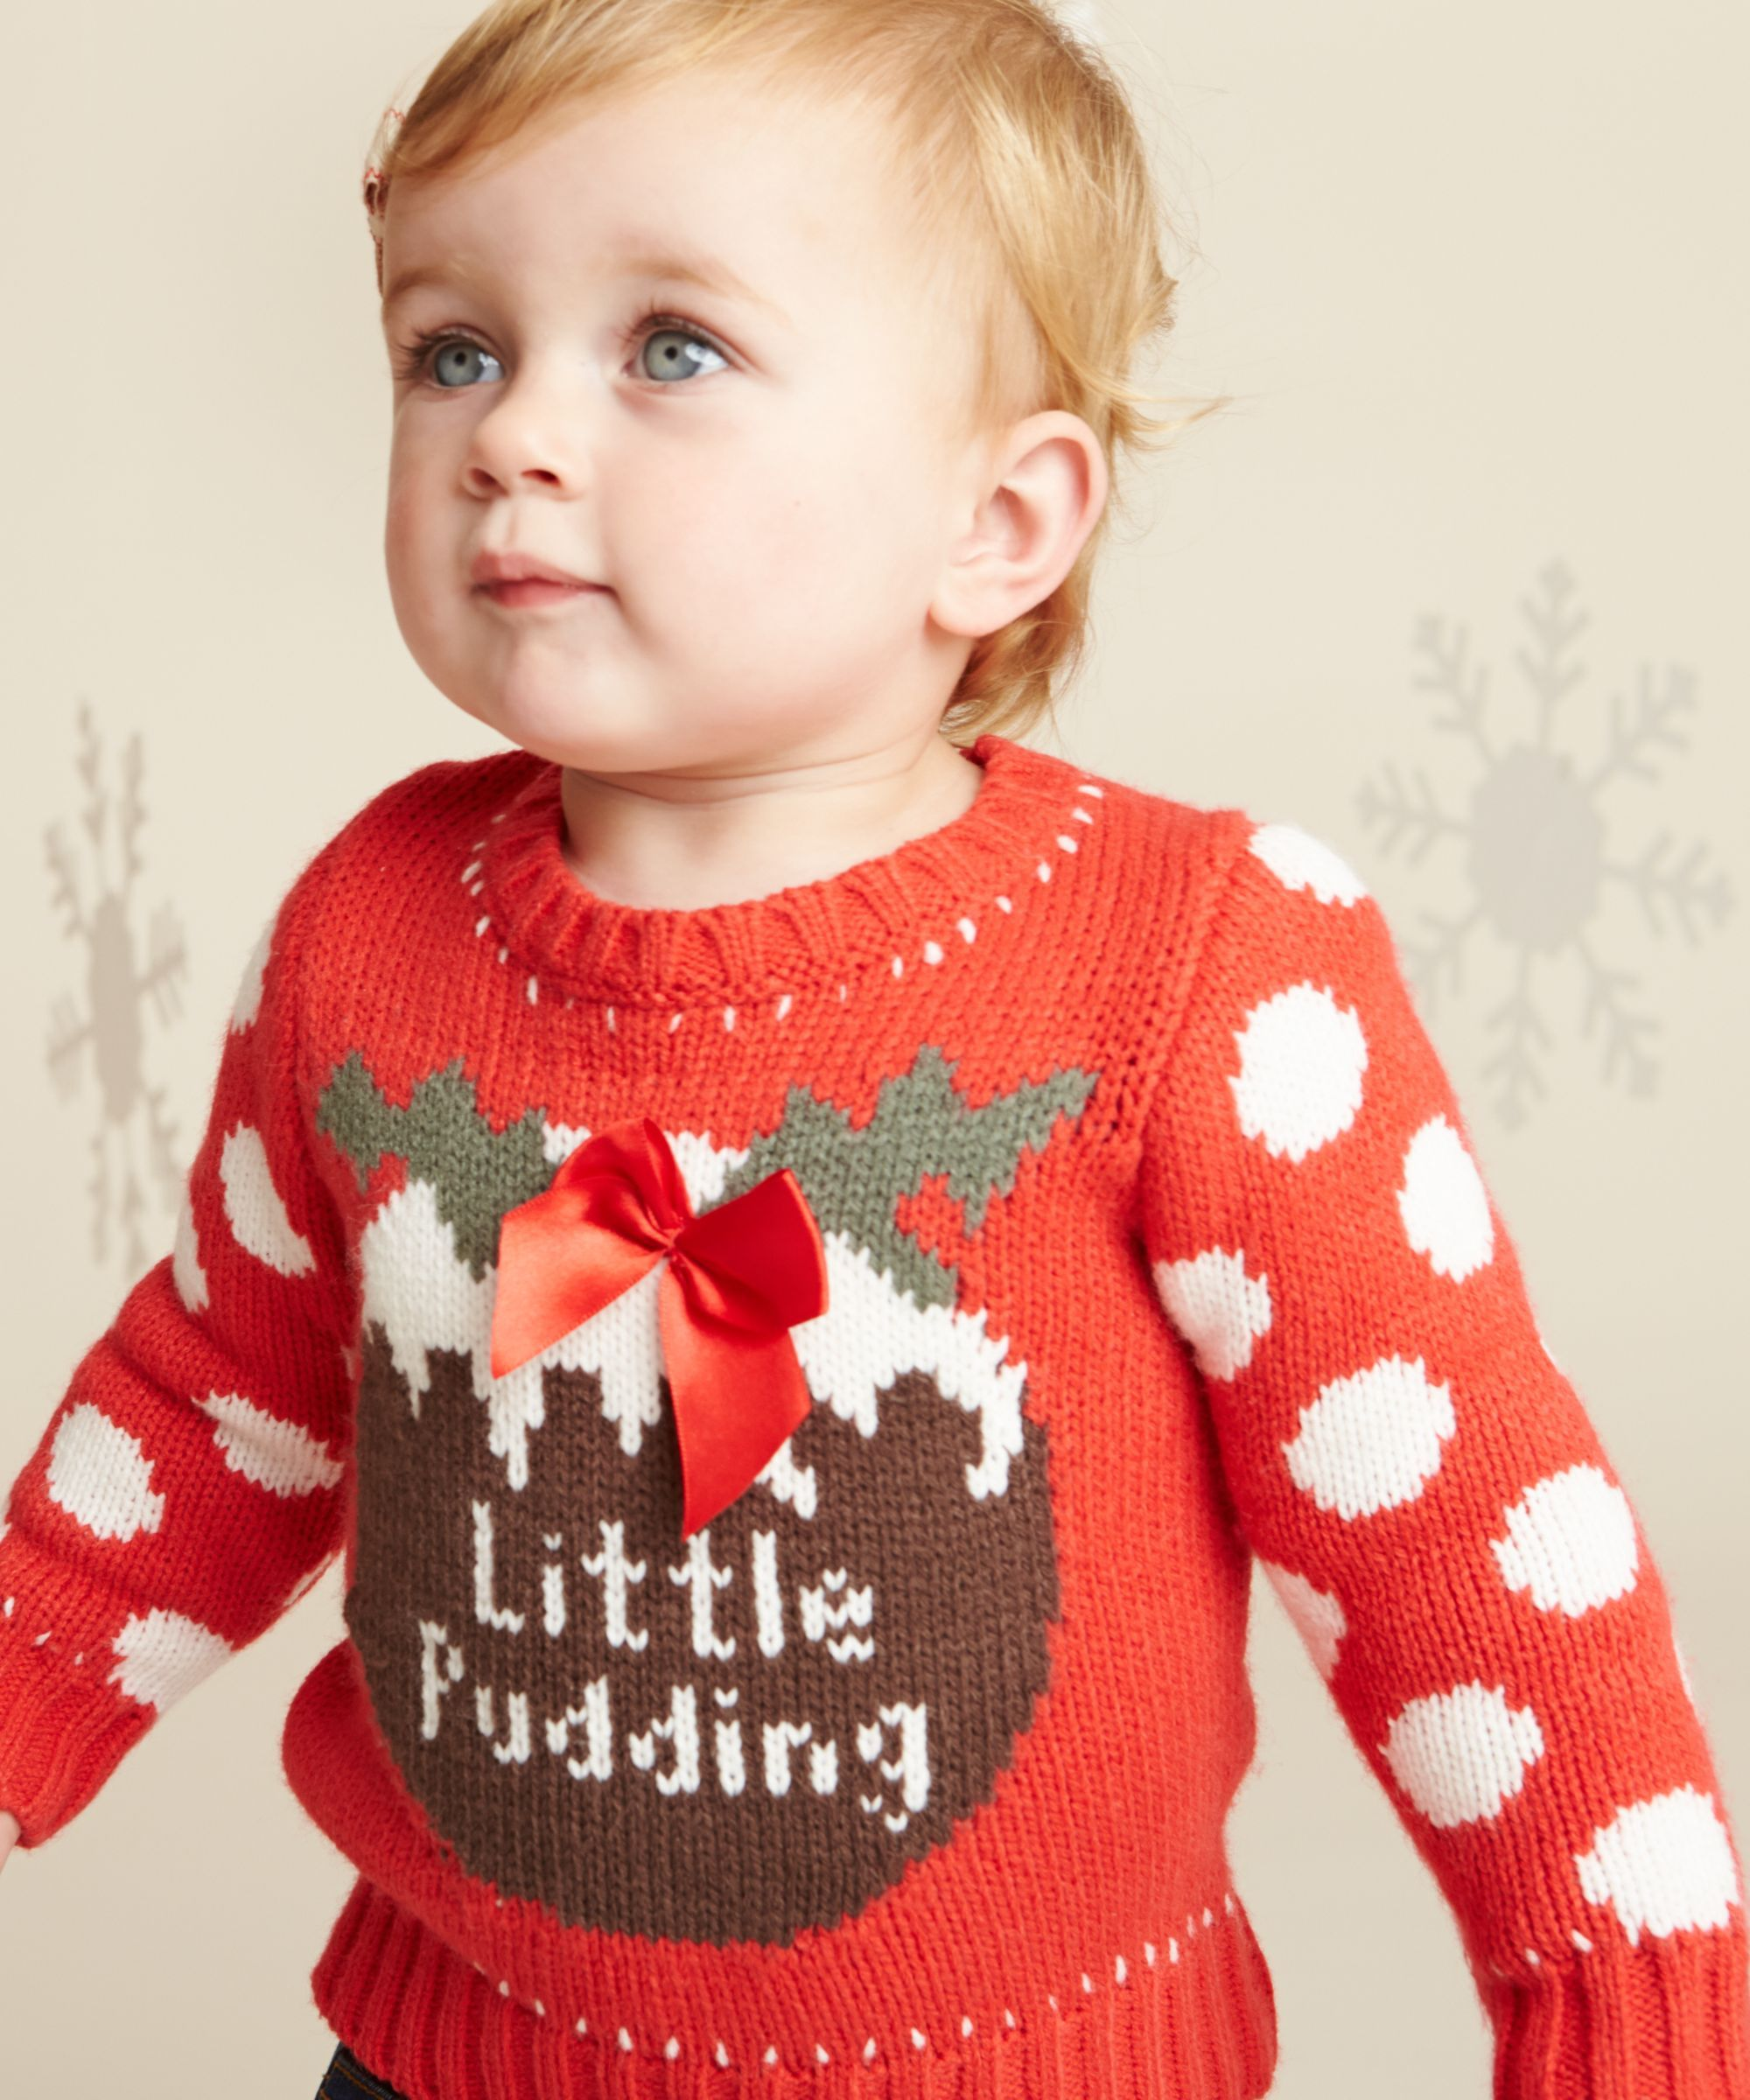 Little pudding christmas jumper christmas jumpers jumper and little pudding christmas jumper bankloansurffo Image collections